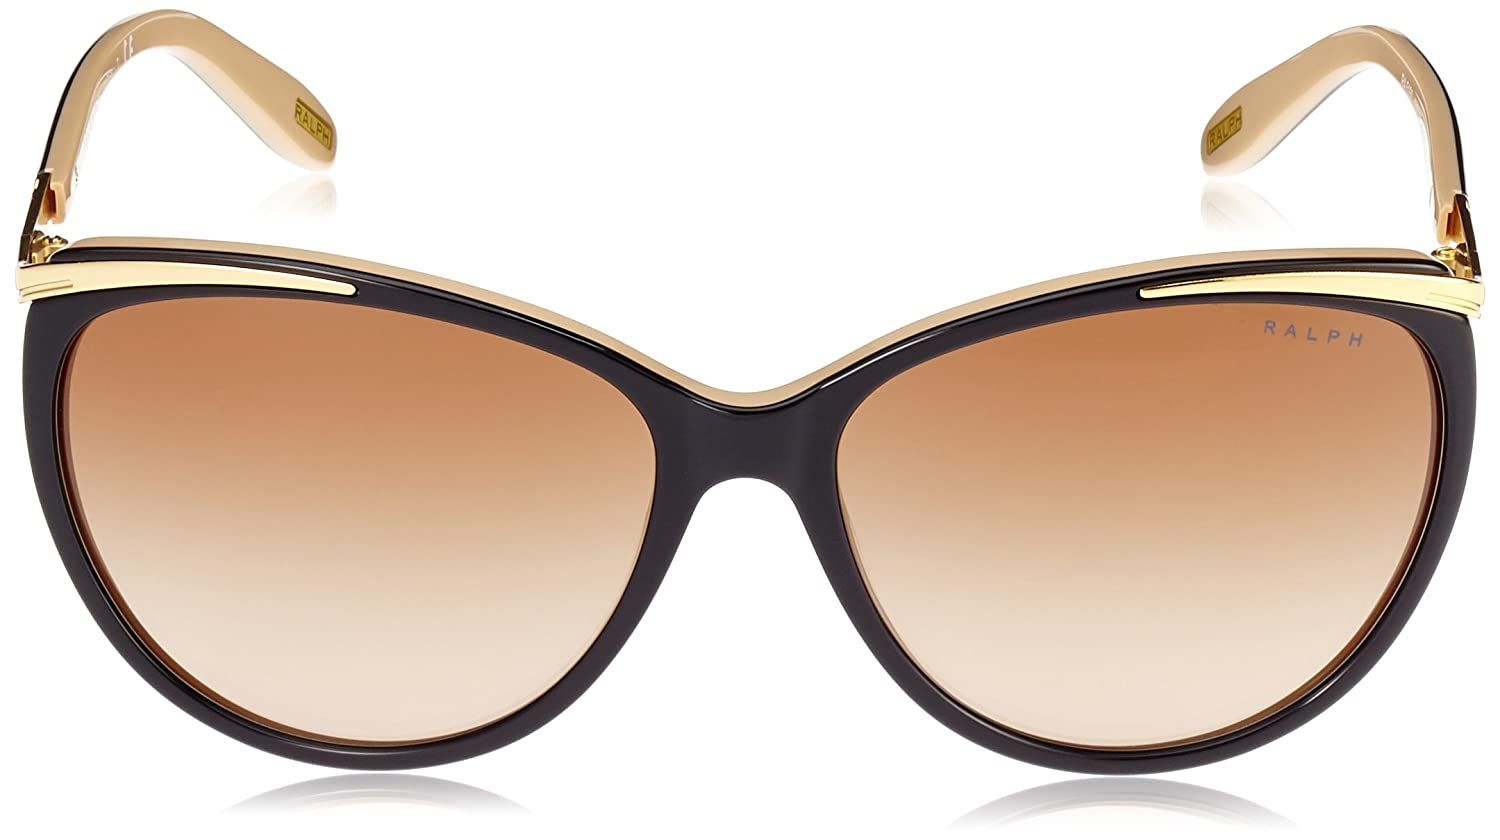 Amazon.com: Ralph by Ralph Lauren Womens 0ra5150 Cateye ...